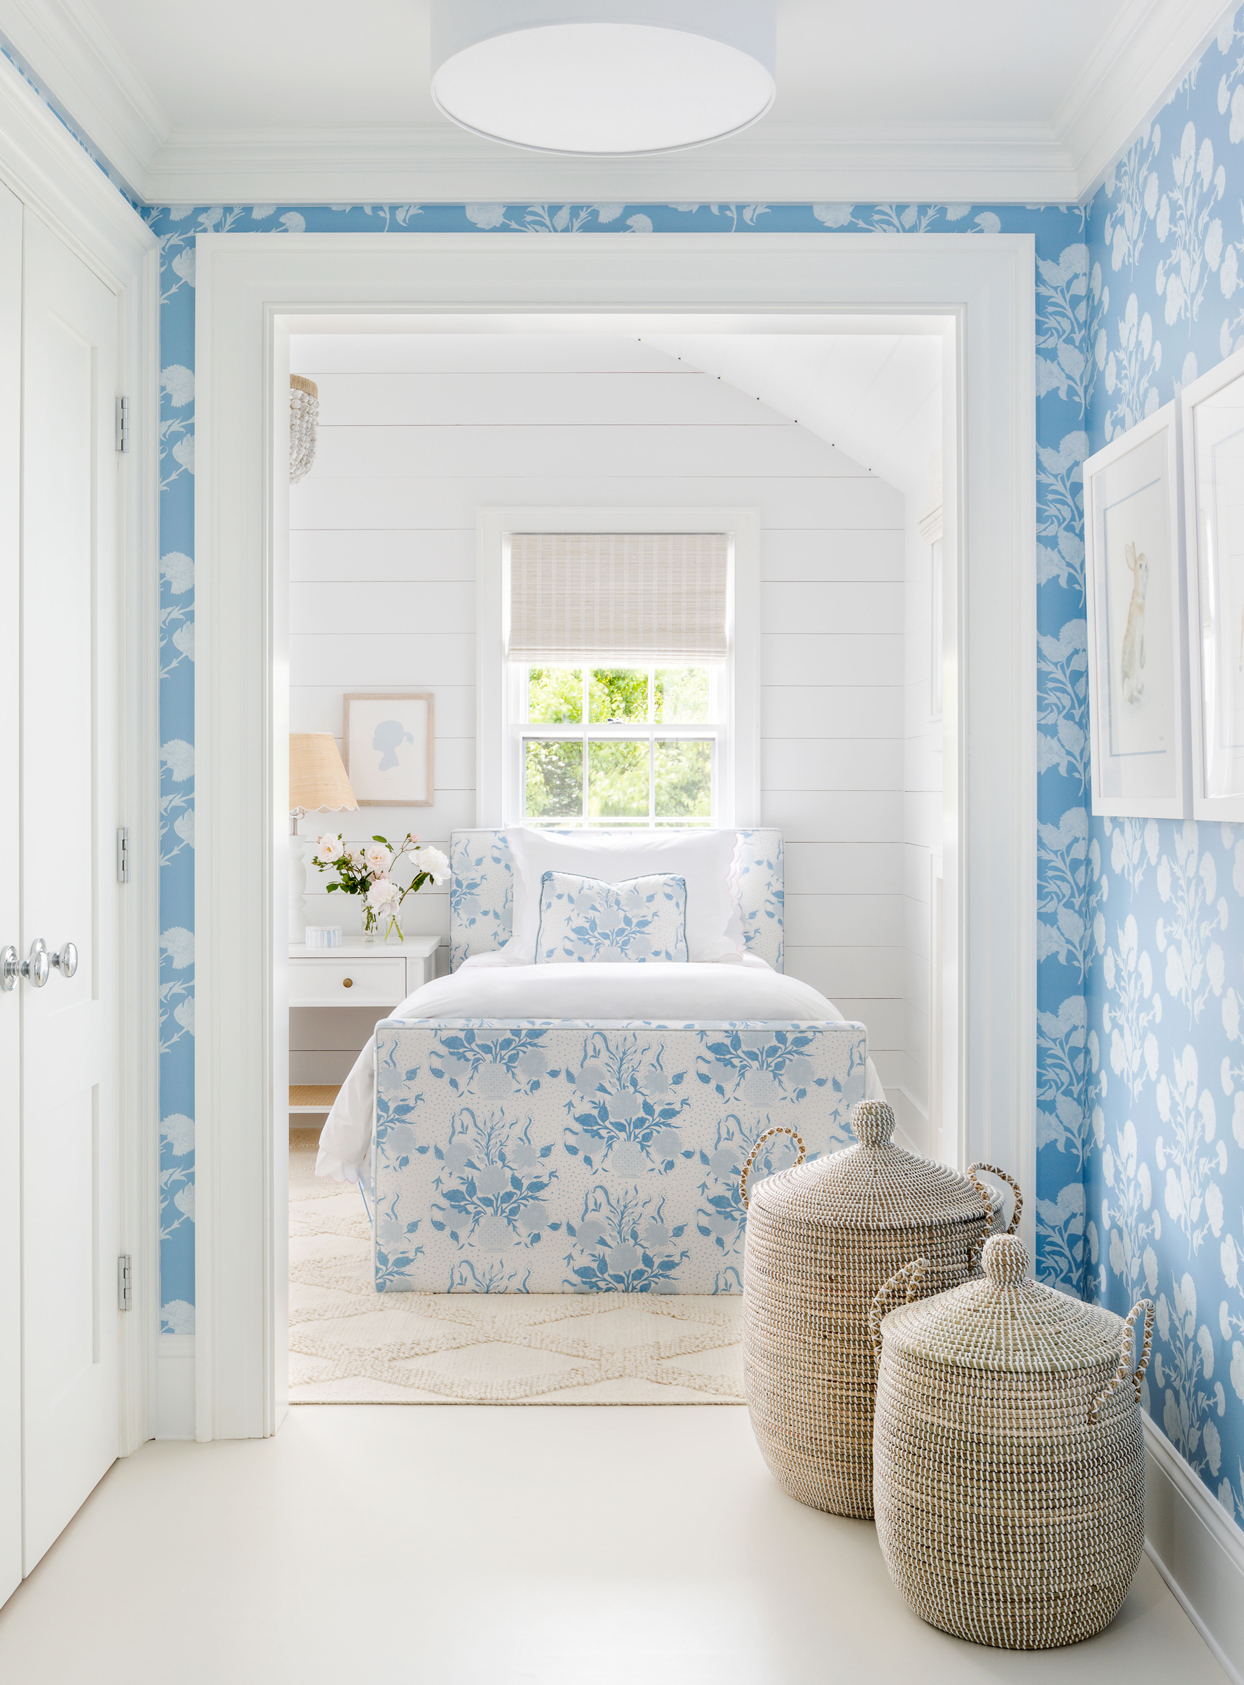 hallway with blue floral wallpaper